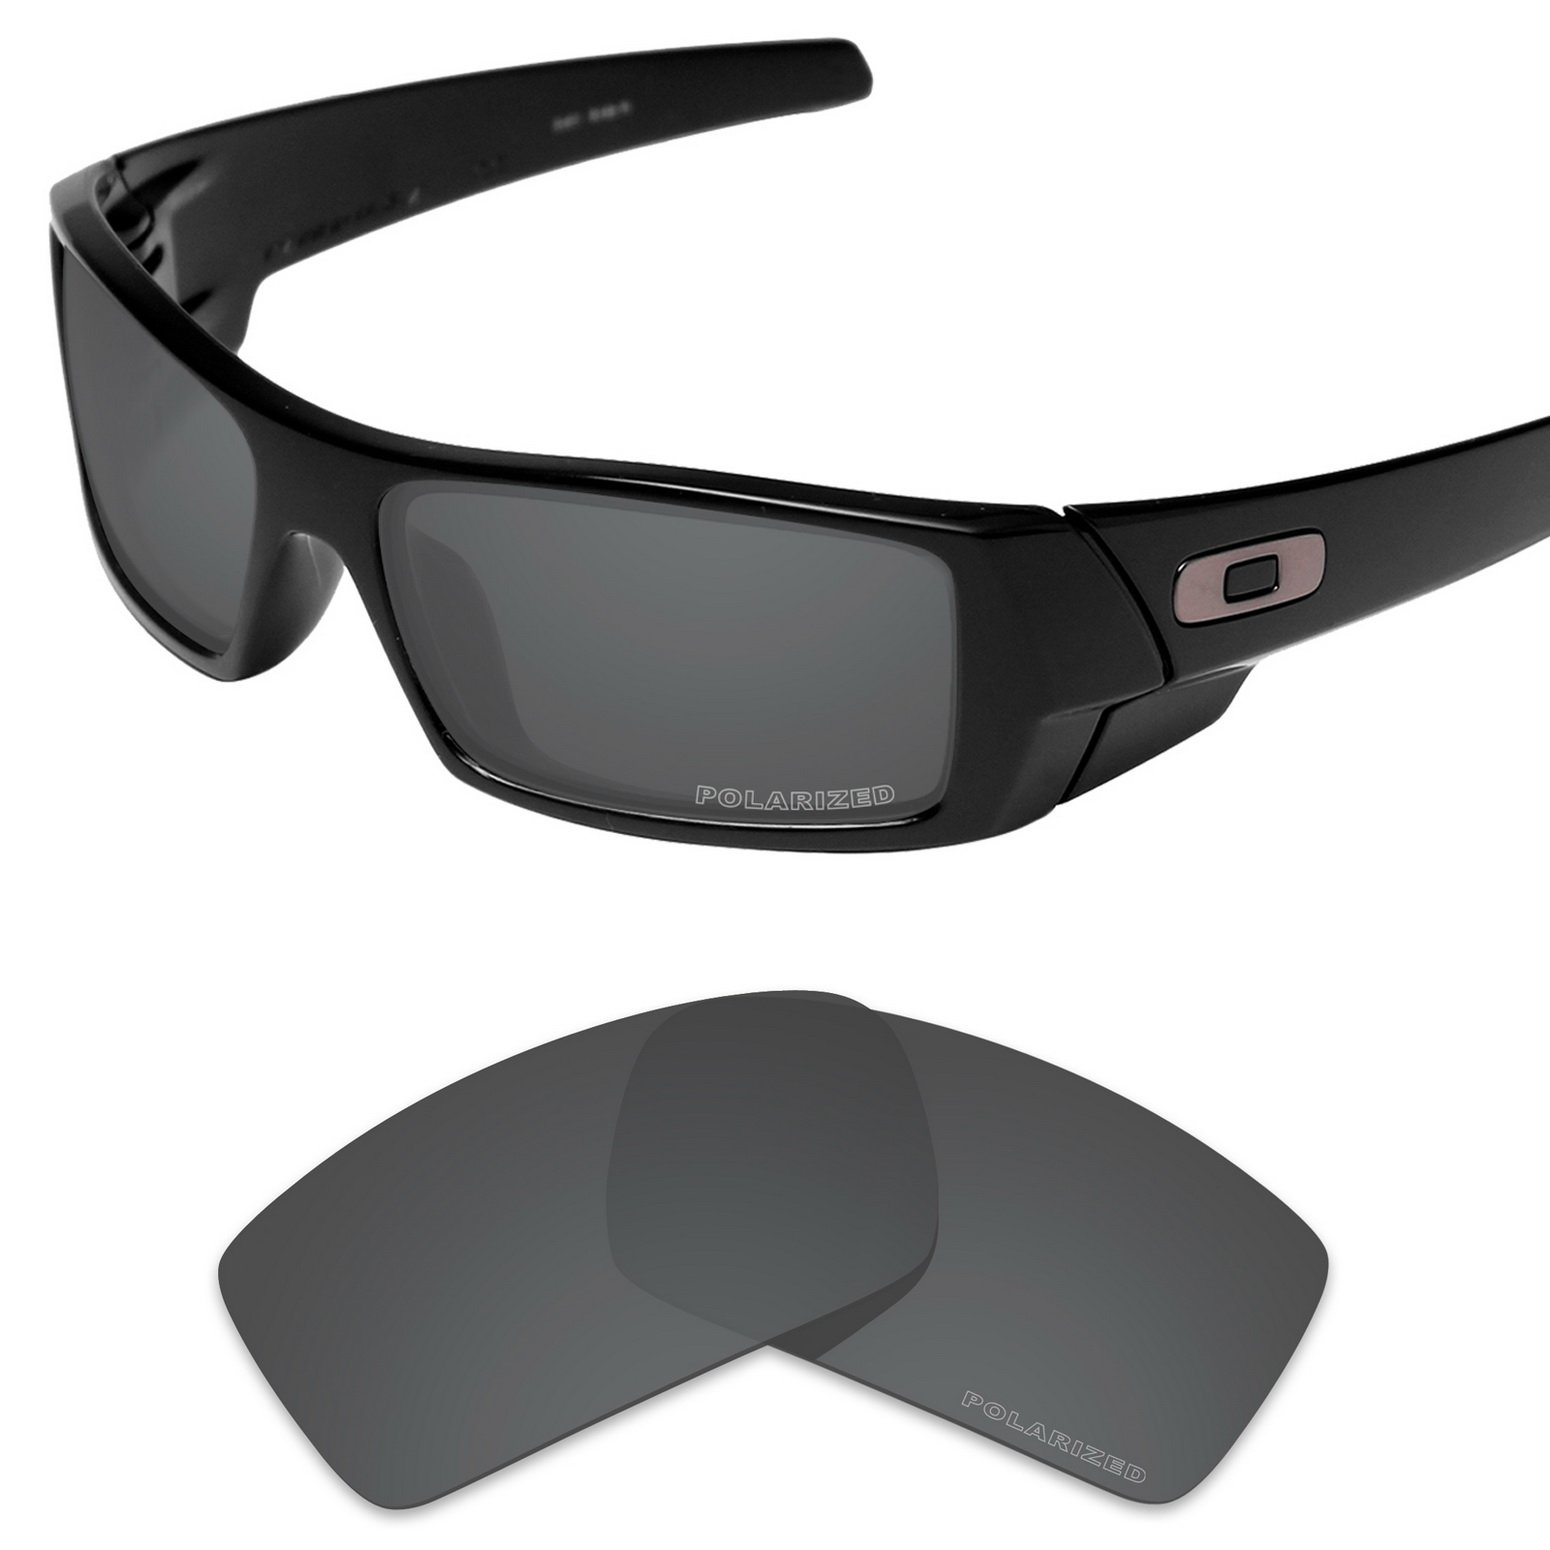 Tintart Performance Replacement Lenses for Oakley Gascan Sunglass Polarized Etched-Carbon Black by Tintart